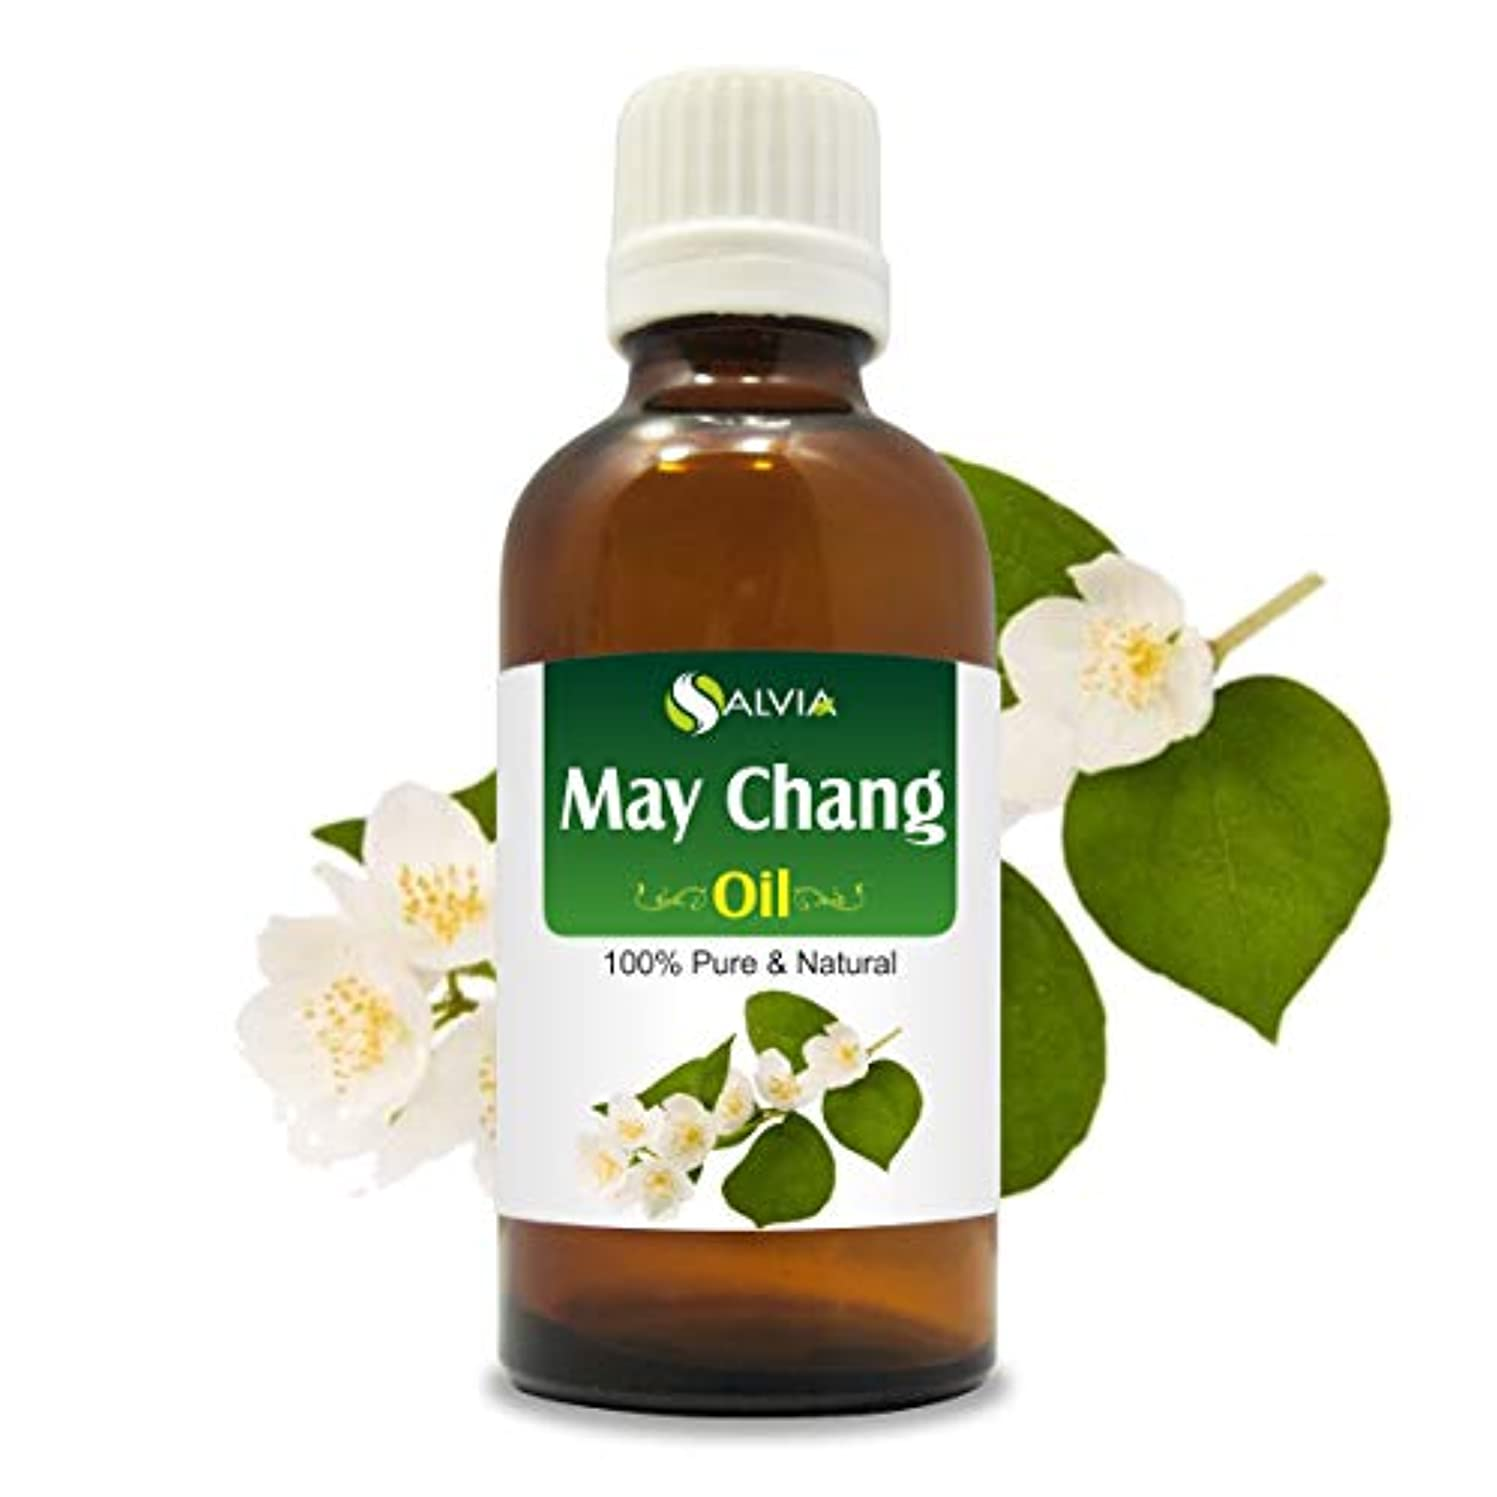 May Chang (Litsea Cubeba) Oil (Litsea cubeba) 100% Natural Pure Undiluted Uncut Essential Oil 30ml